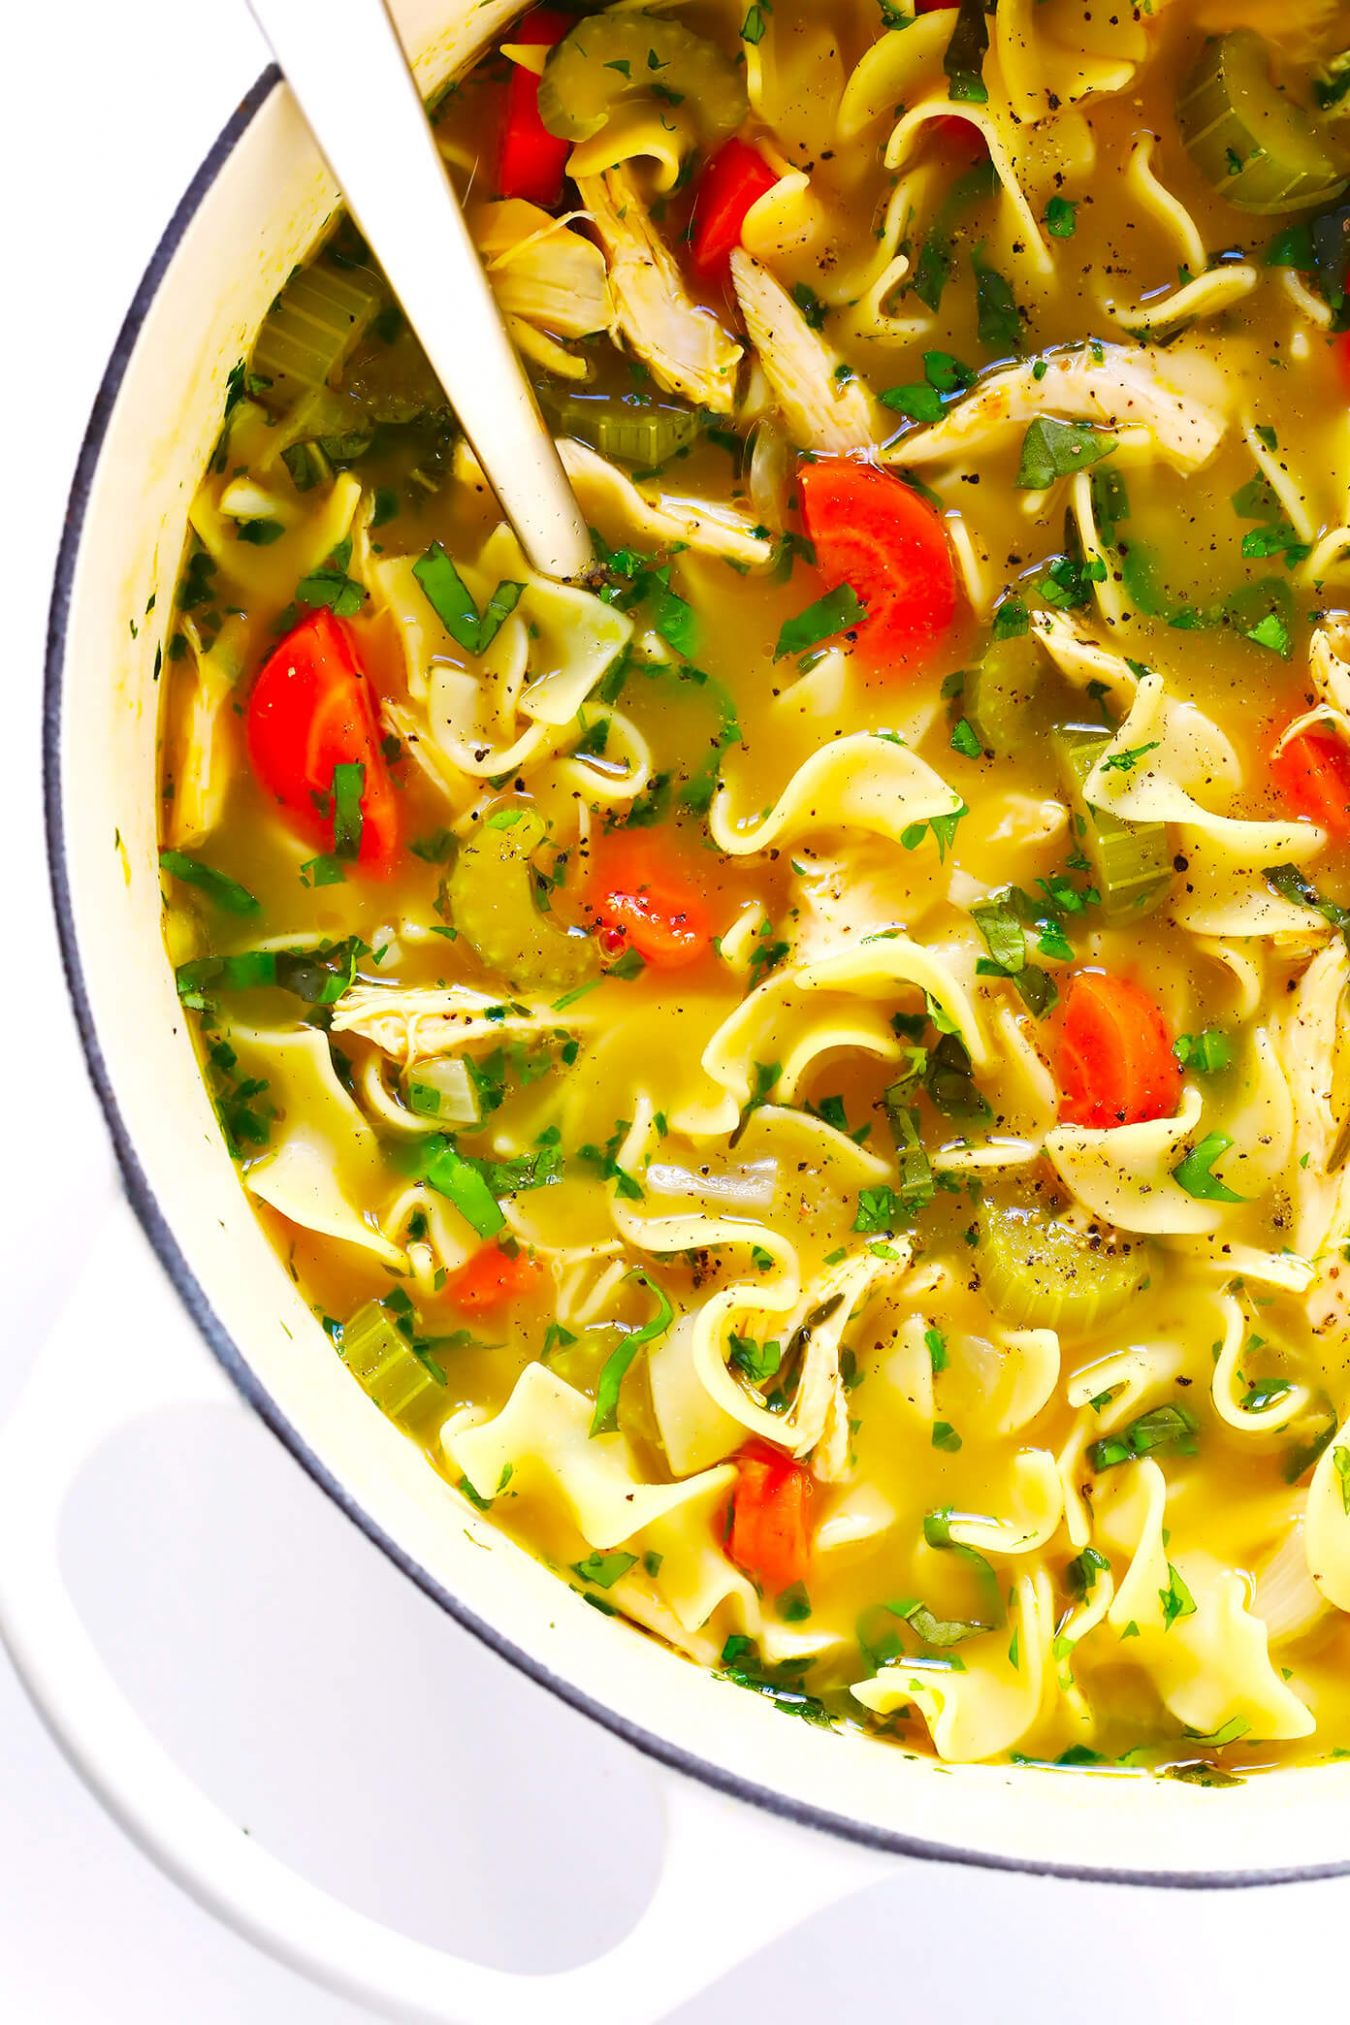 Herb-Loaded Chicken Noodle Soup